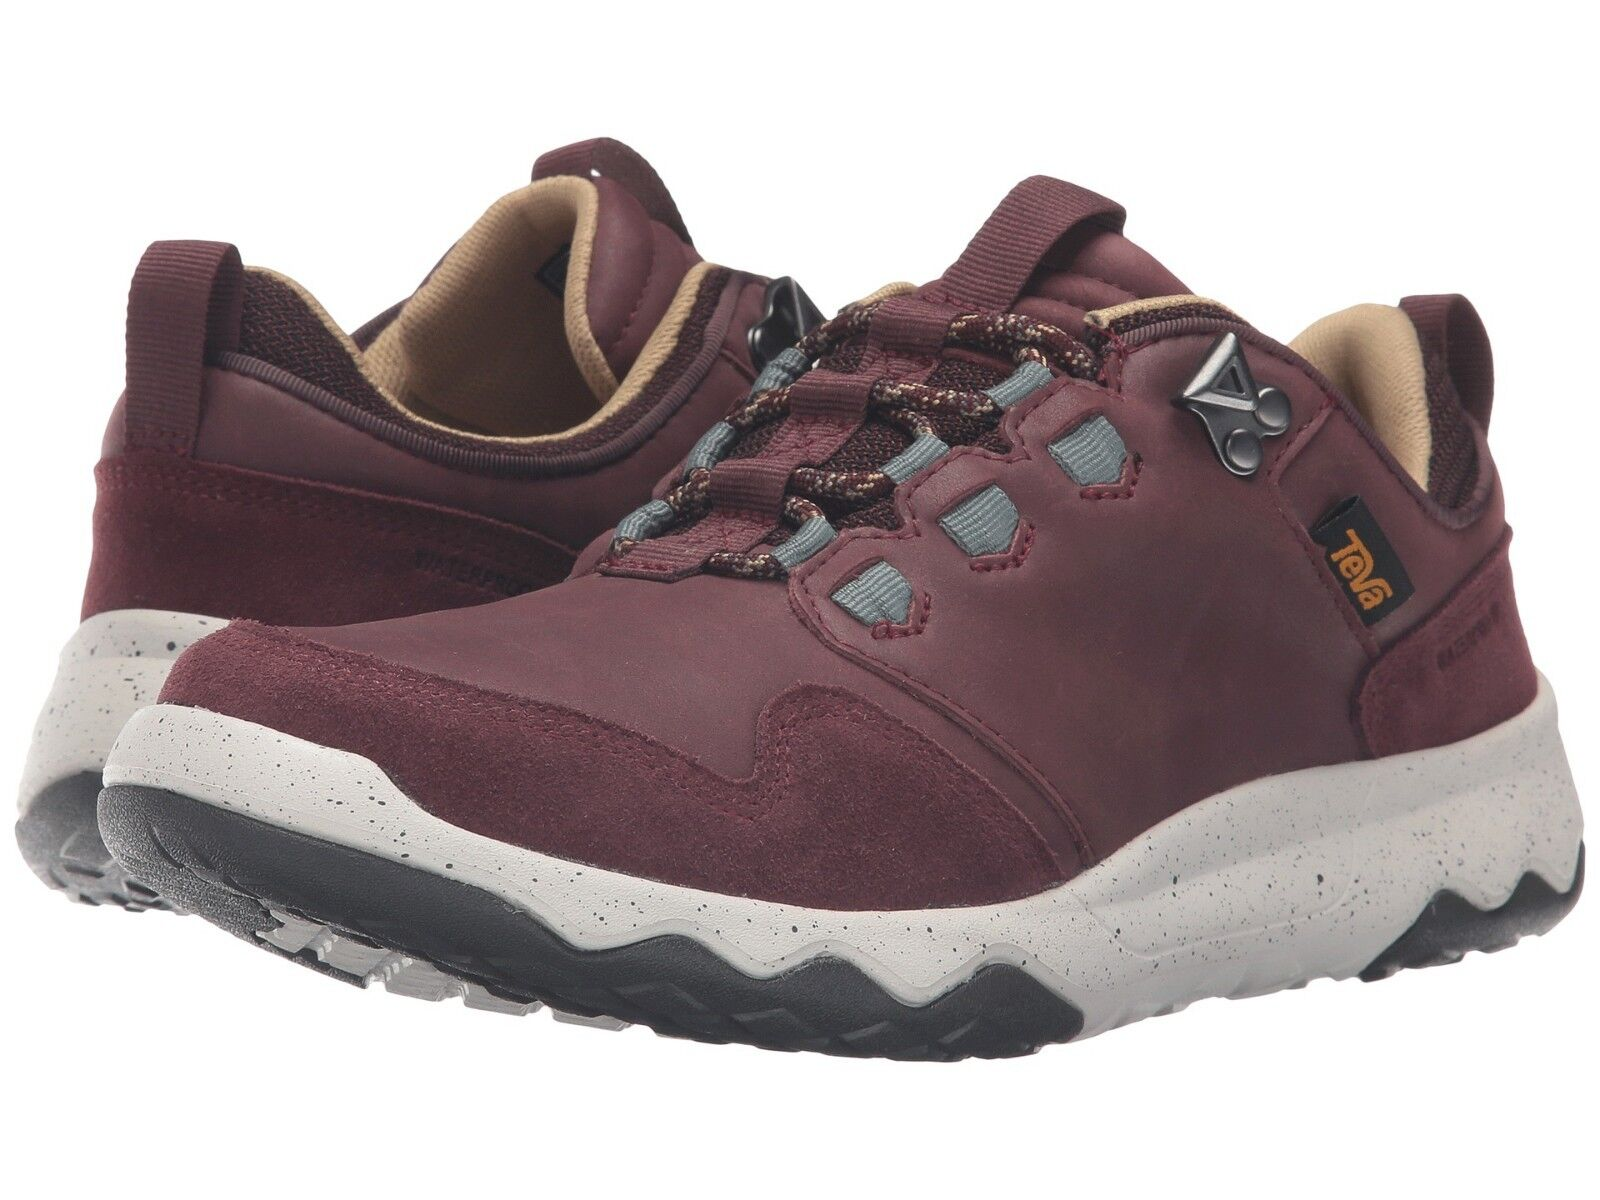 a998e2bb854051 ... UPC 190108016185 product image for 40% Off Men s 1014555 Teva Arrowood  Lux Trail Boots